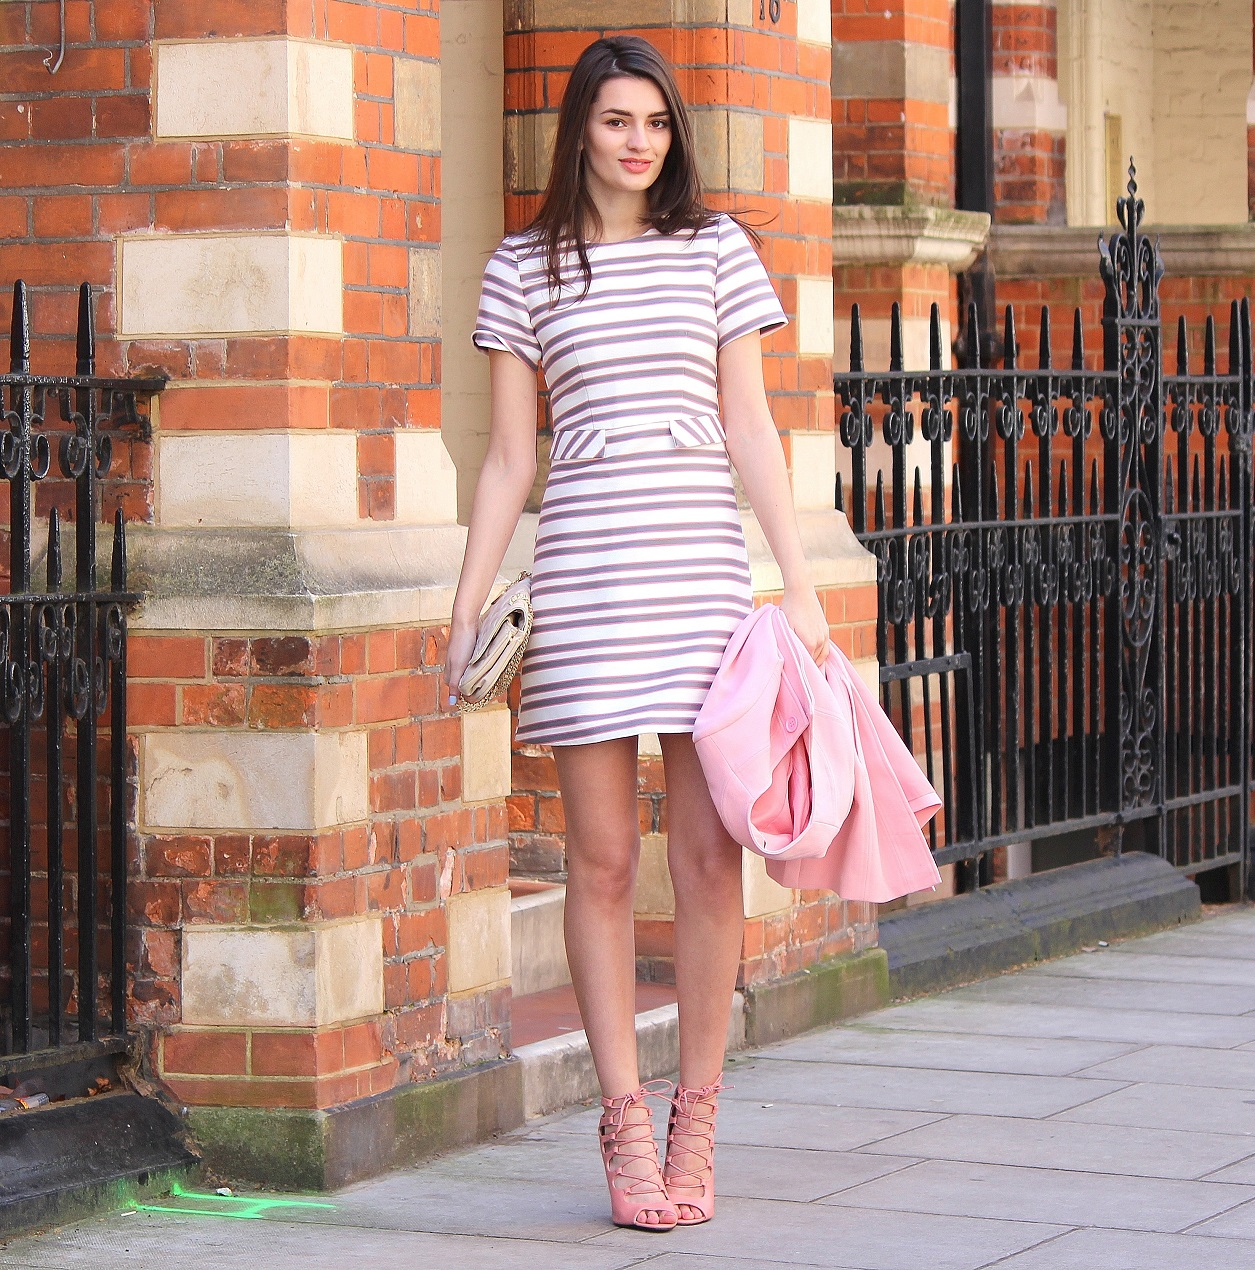 a74b3ea0370 peexo fashion blogger wearing pink striped shift dress for wedding season  spring